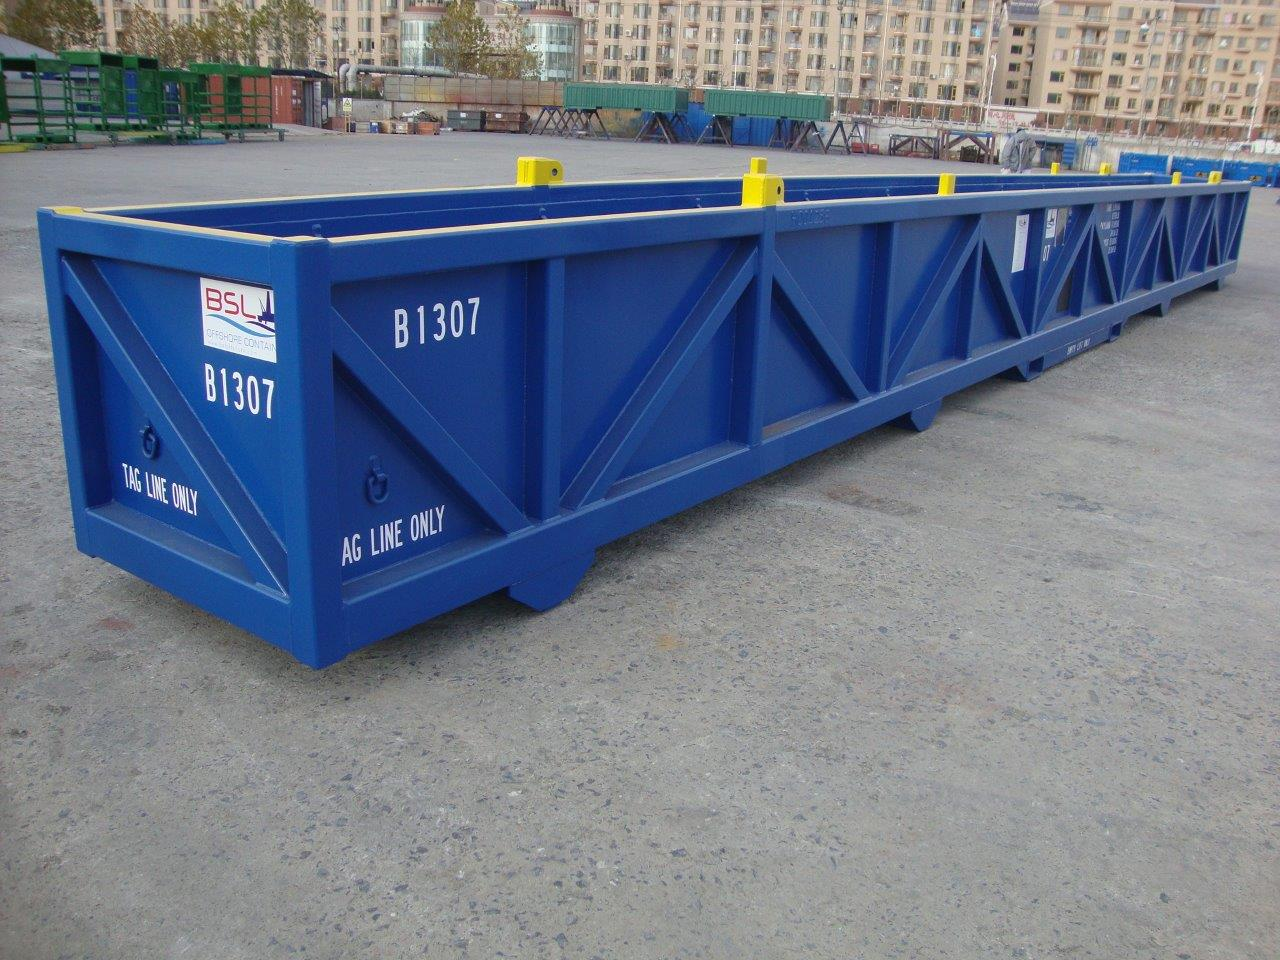 13.3m Cargo Basket - BSL Offshore Containers